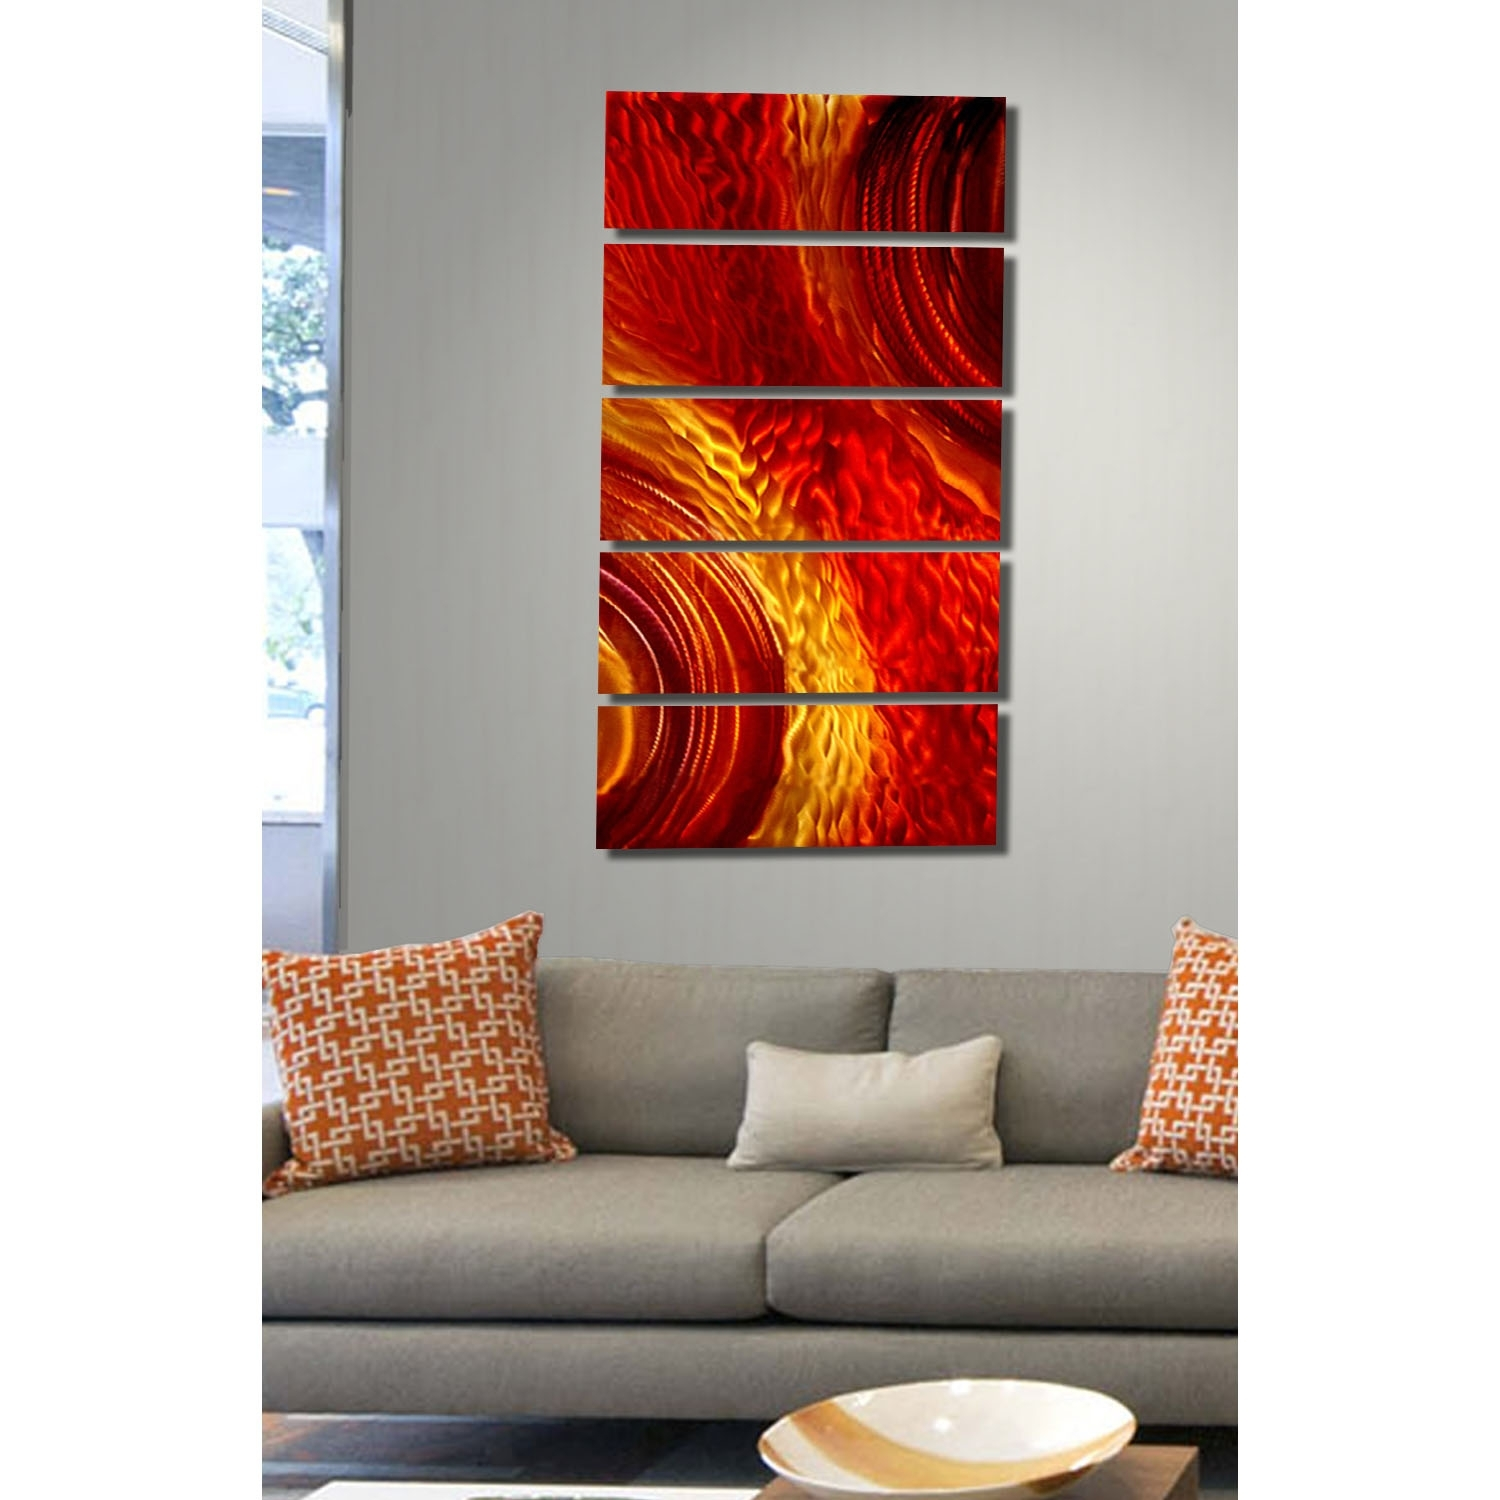 Magma – Red And Gold Metal Wall Art – 5 Panel Wall Décorjon With Regard To Best And Newest Orange Wall Art (Gallery 7 of 20)